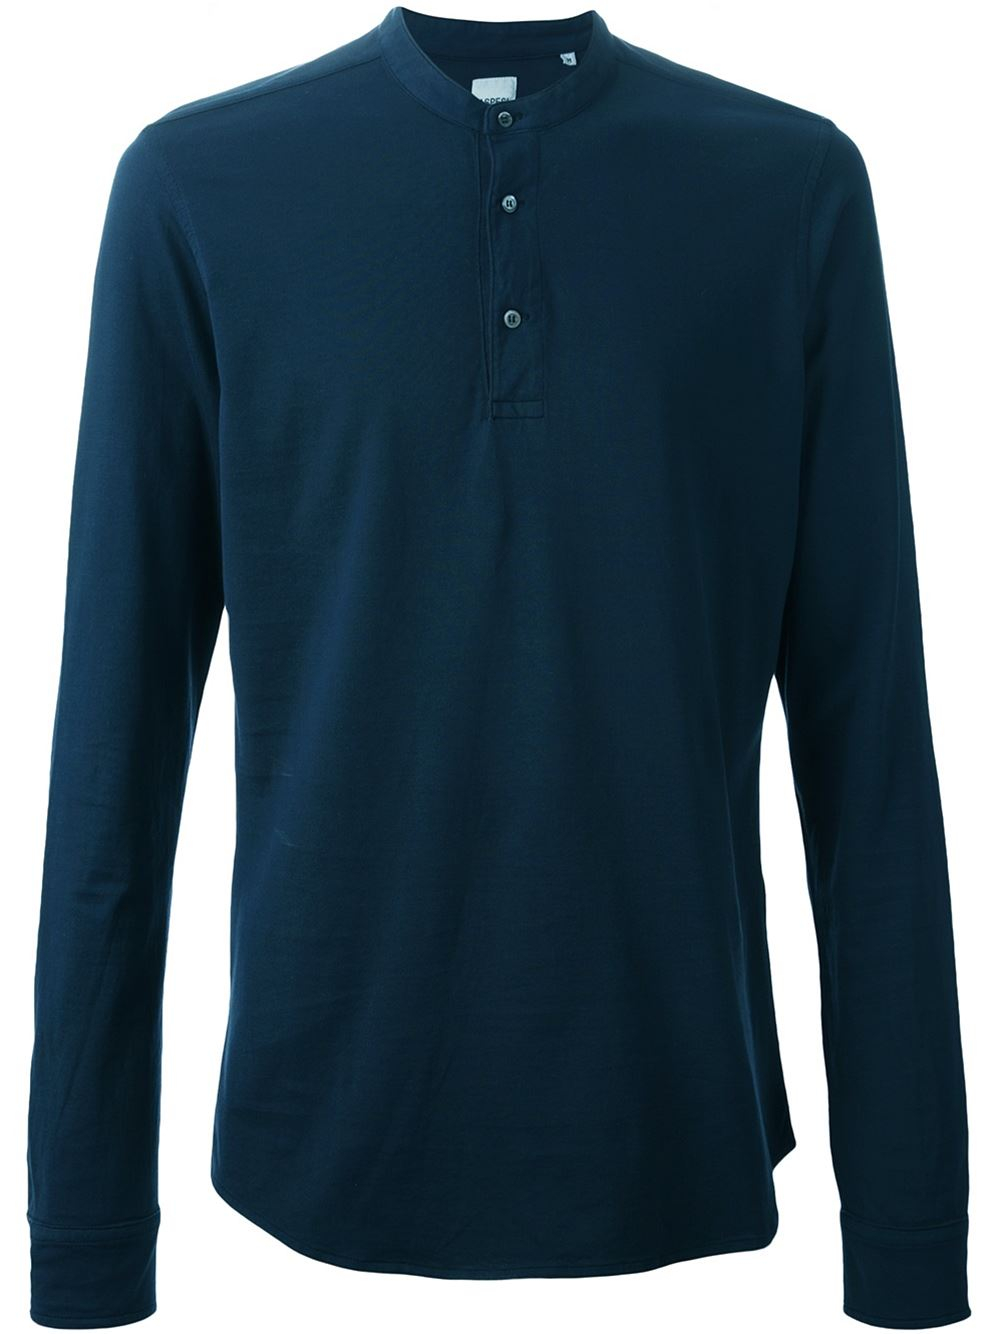 Aspesi button collar long sleeve t shirt in blue for men for Three button collar shirts